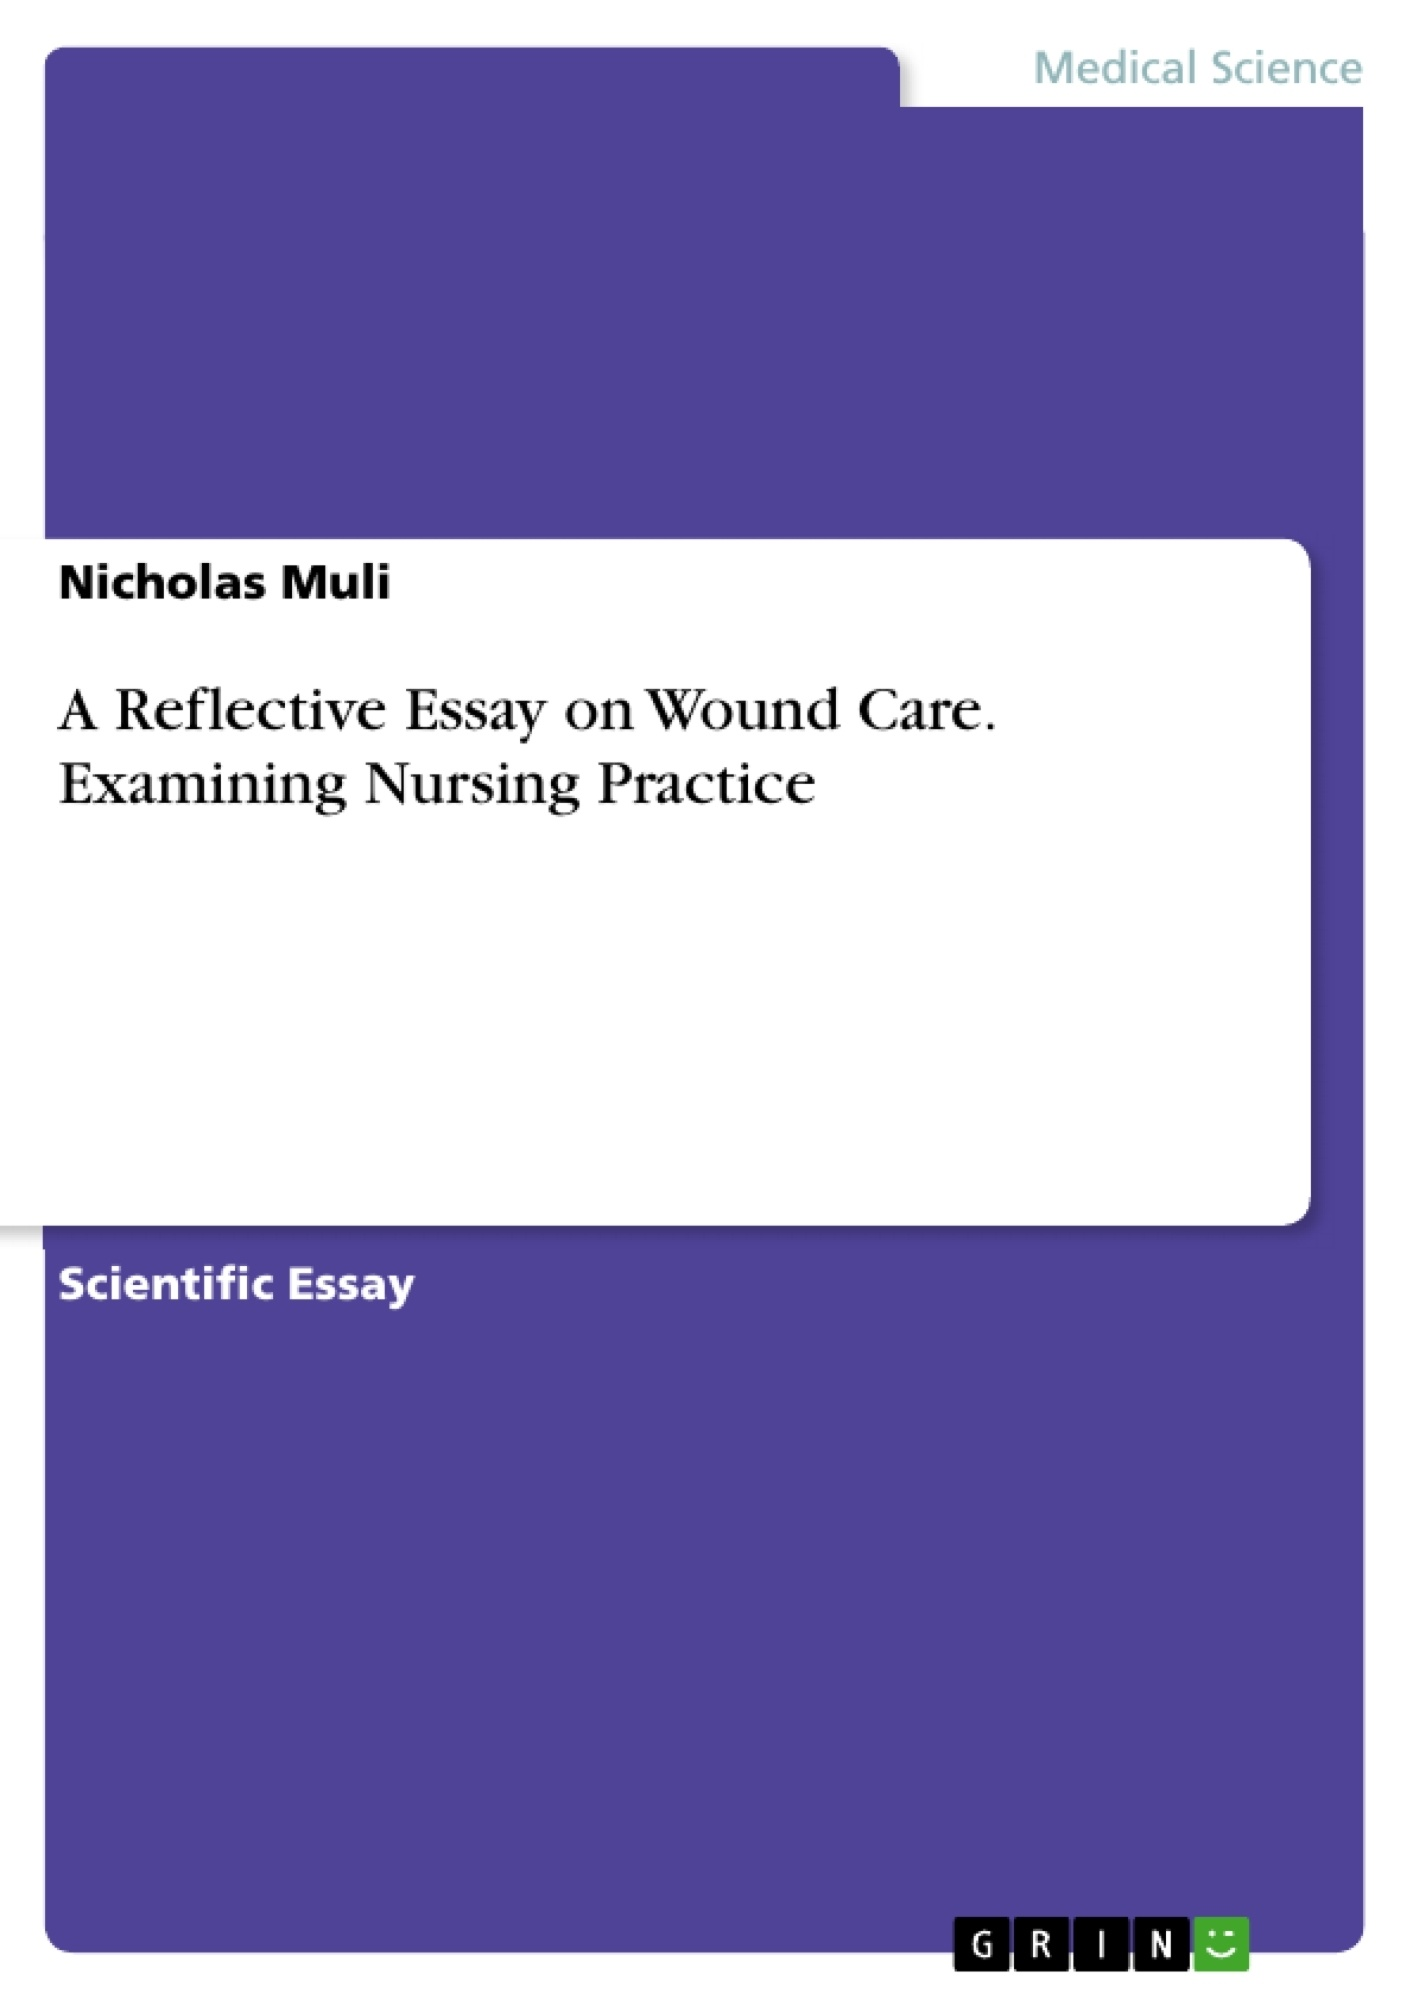 a reflective essay on wound care examining nursing practice  upload your own papers earn money and win an iphone x